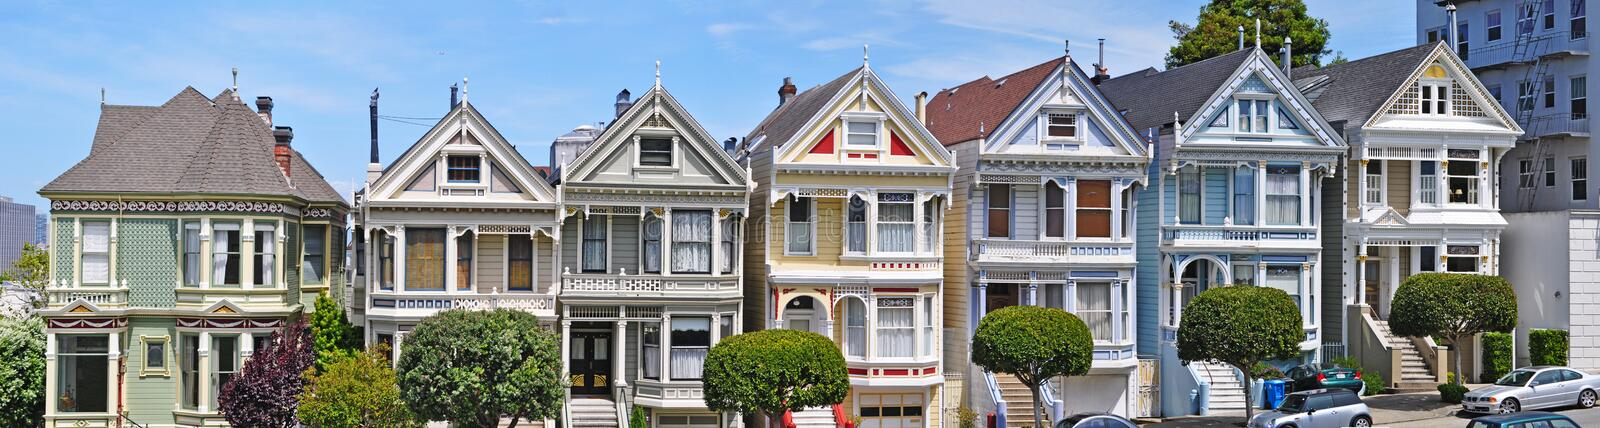 San Francisco, Painted Ladies, architecture, victorian house, California, United States of America, Usa, Alamo Square, panoramic royalty free stock images